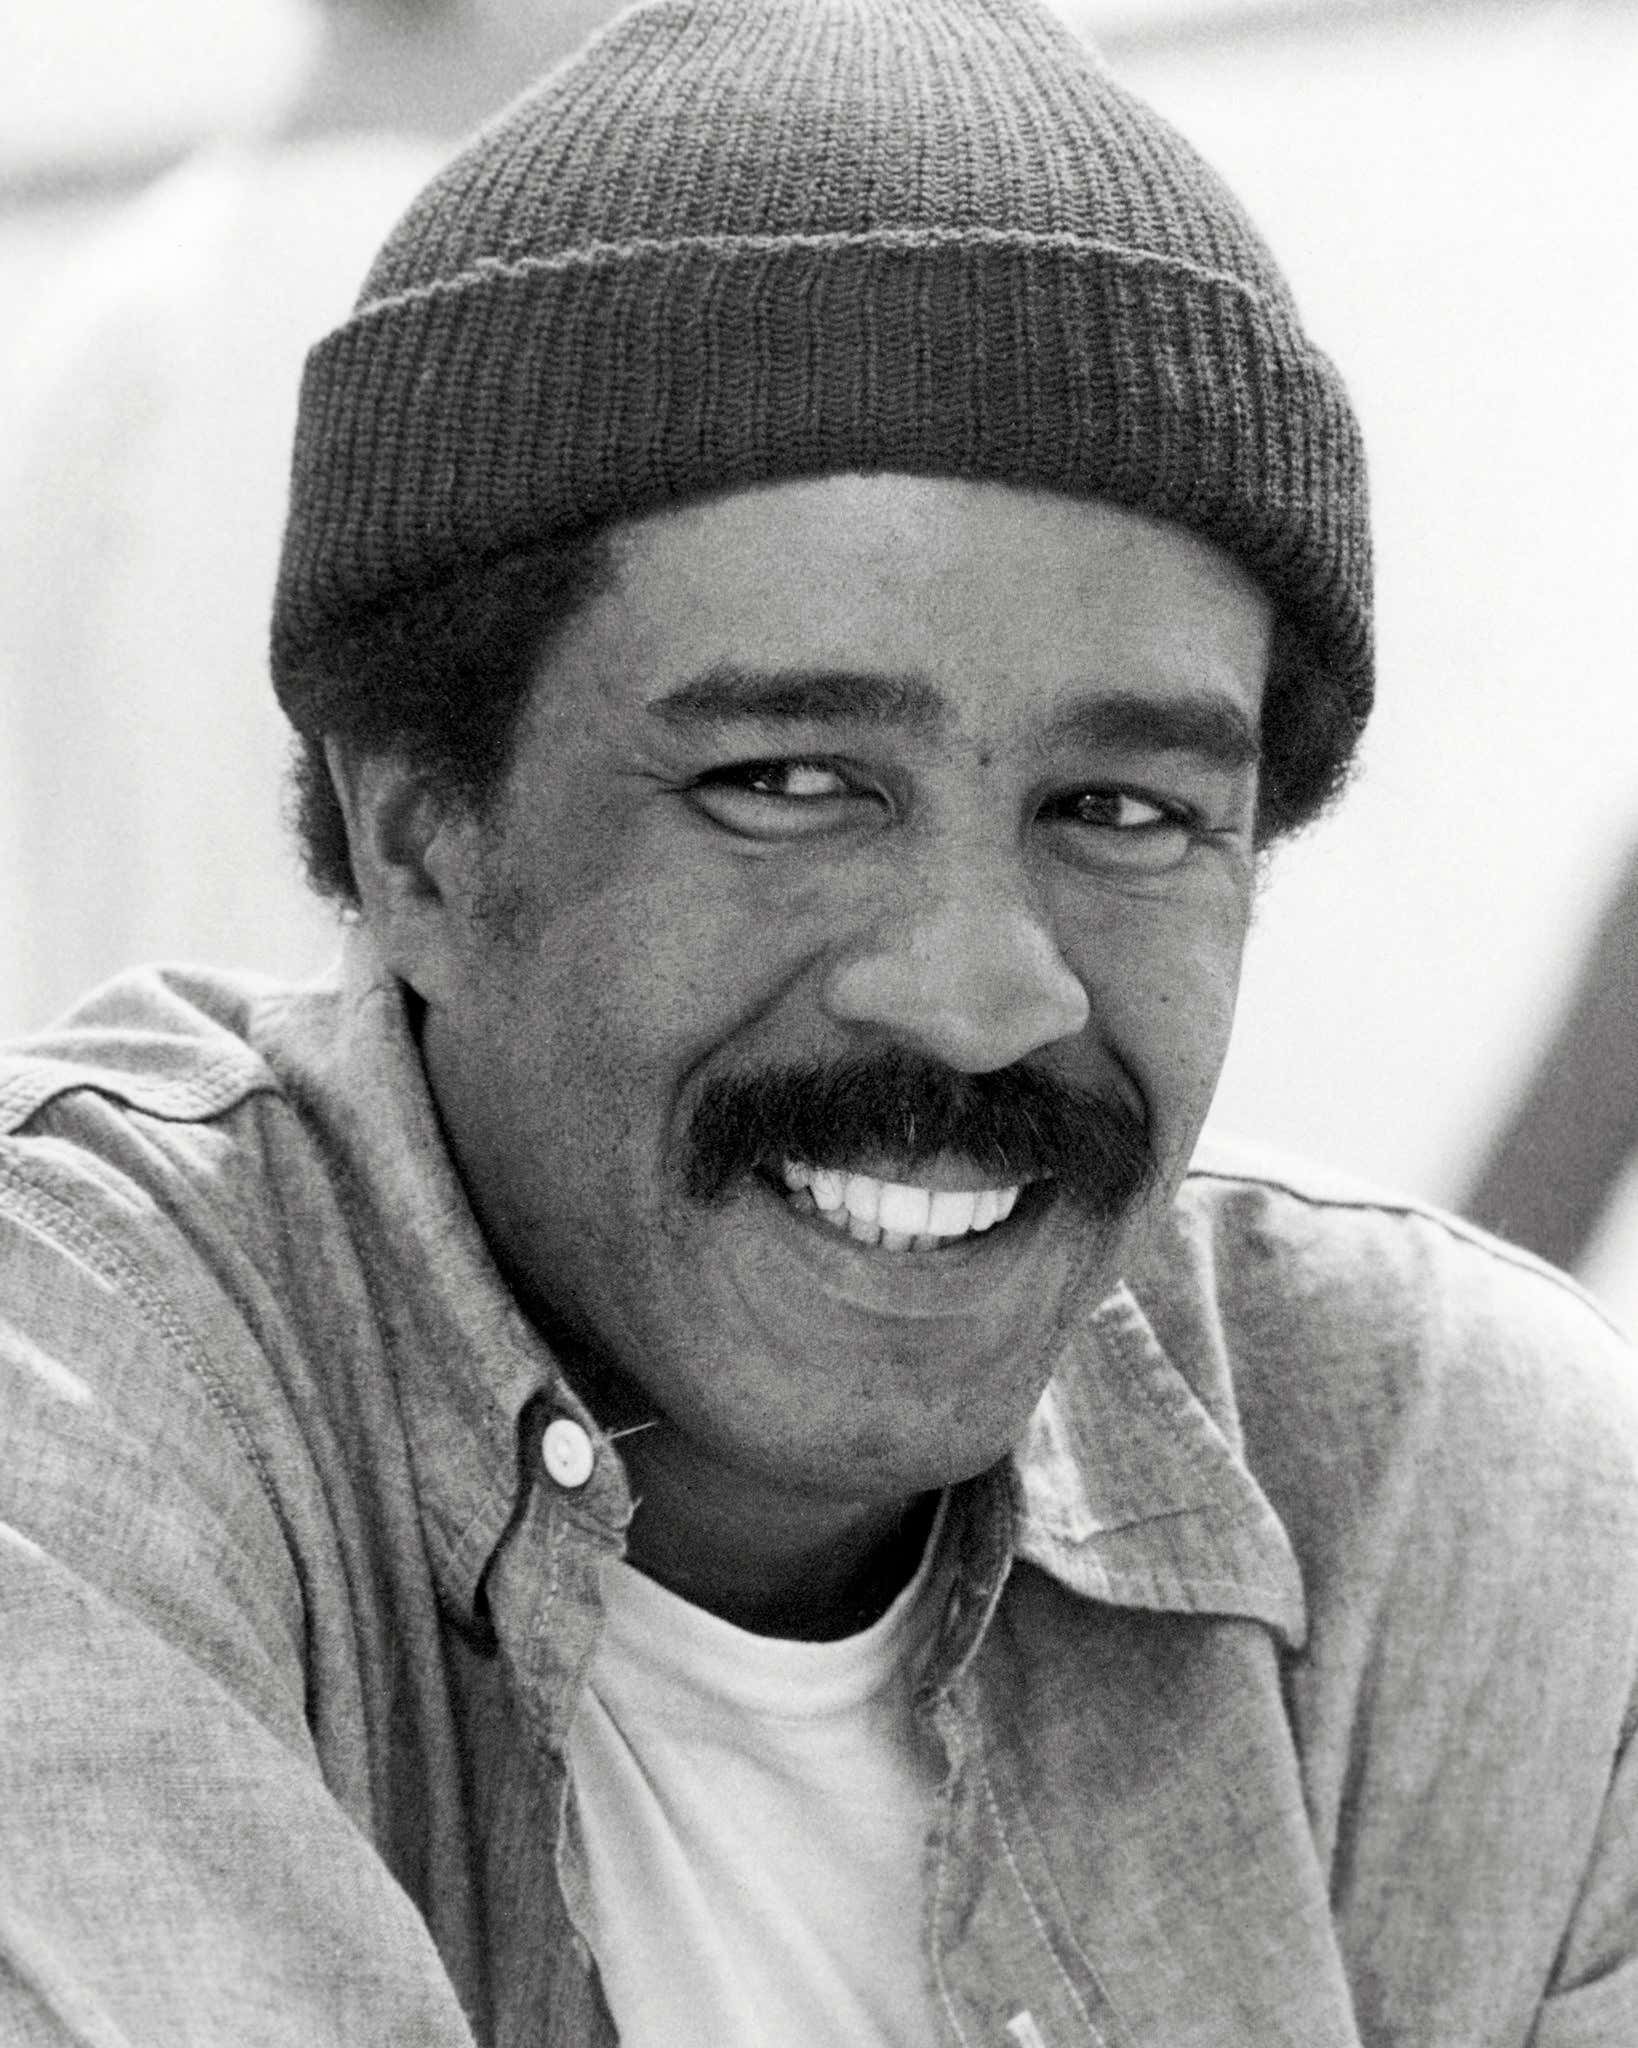 American actor and comedian Richard Pryor (1940 - 2005) as Harry Monroe in 'Stir Crazy', directed by Sidney Poitier, 1980. (Photo by Silver Screen Collection/Getty Images)